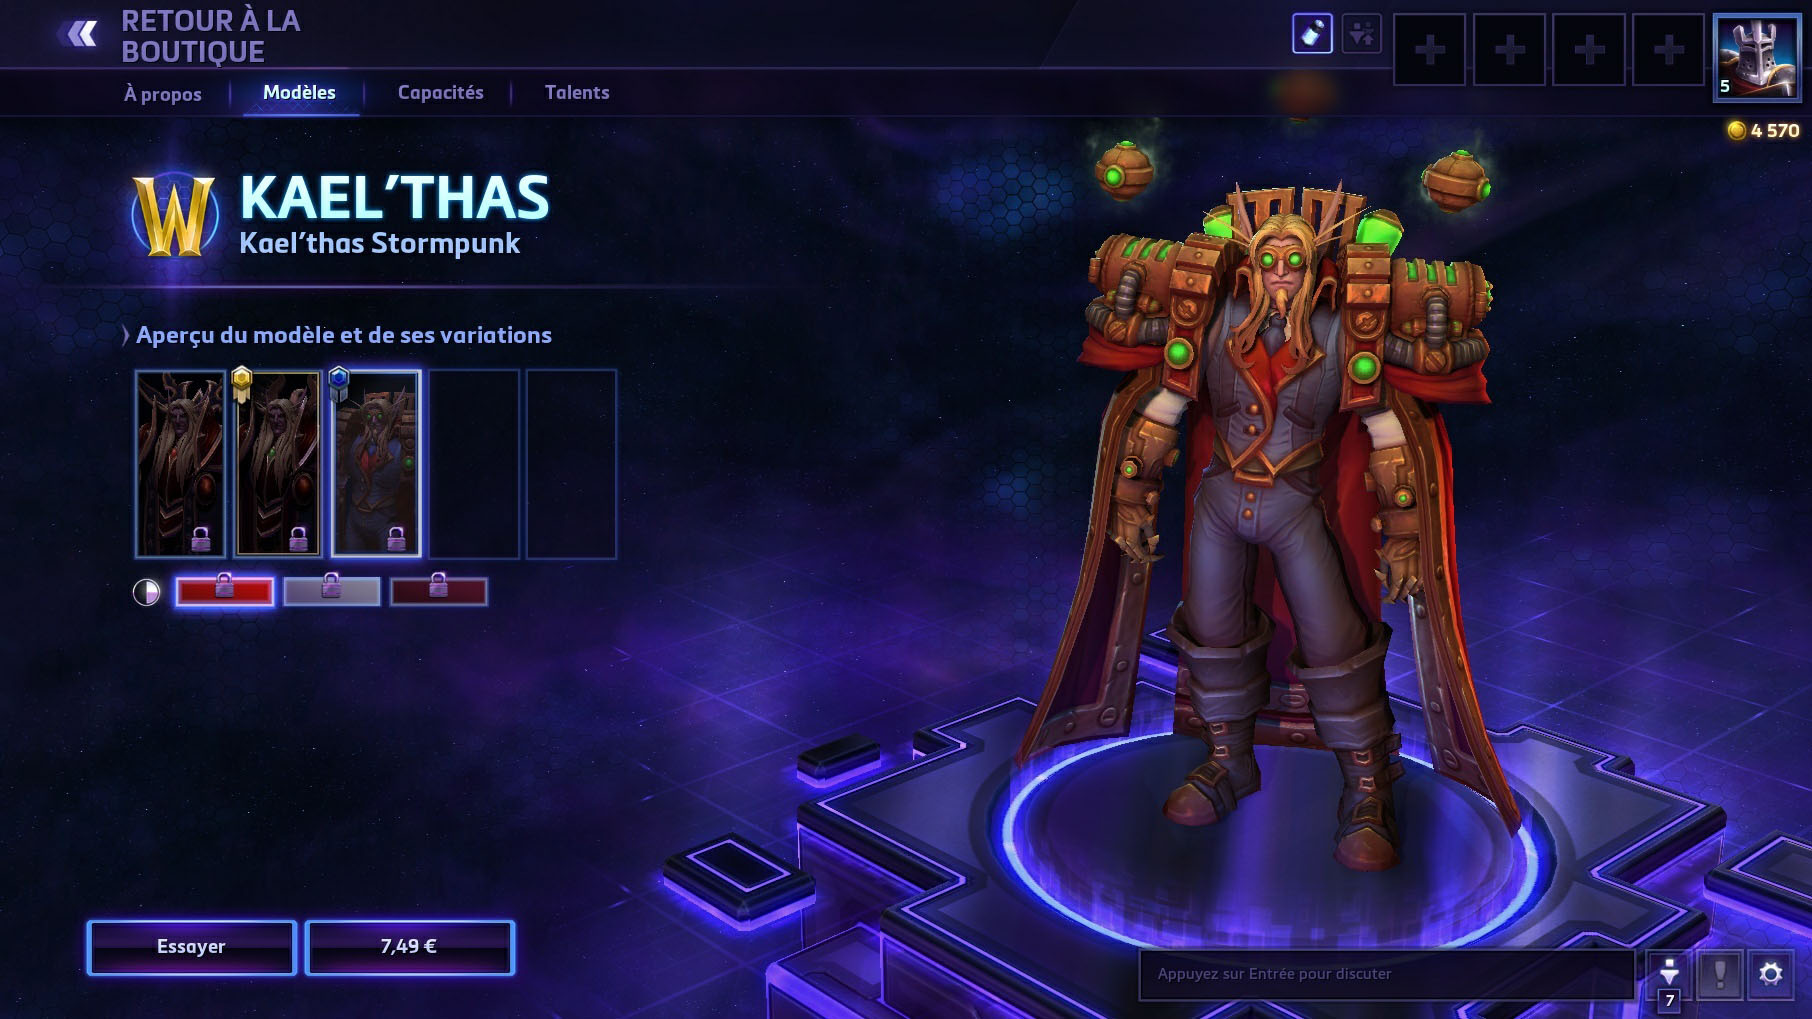 Apparence de Kael'thas dans Heroes of the Storm.